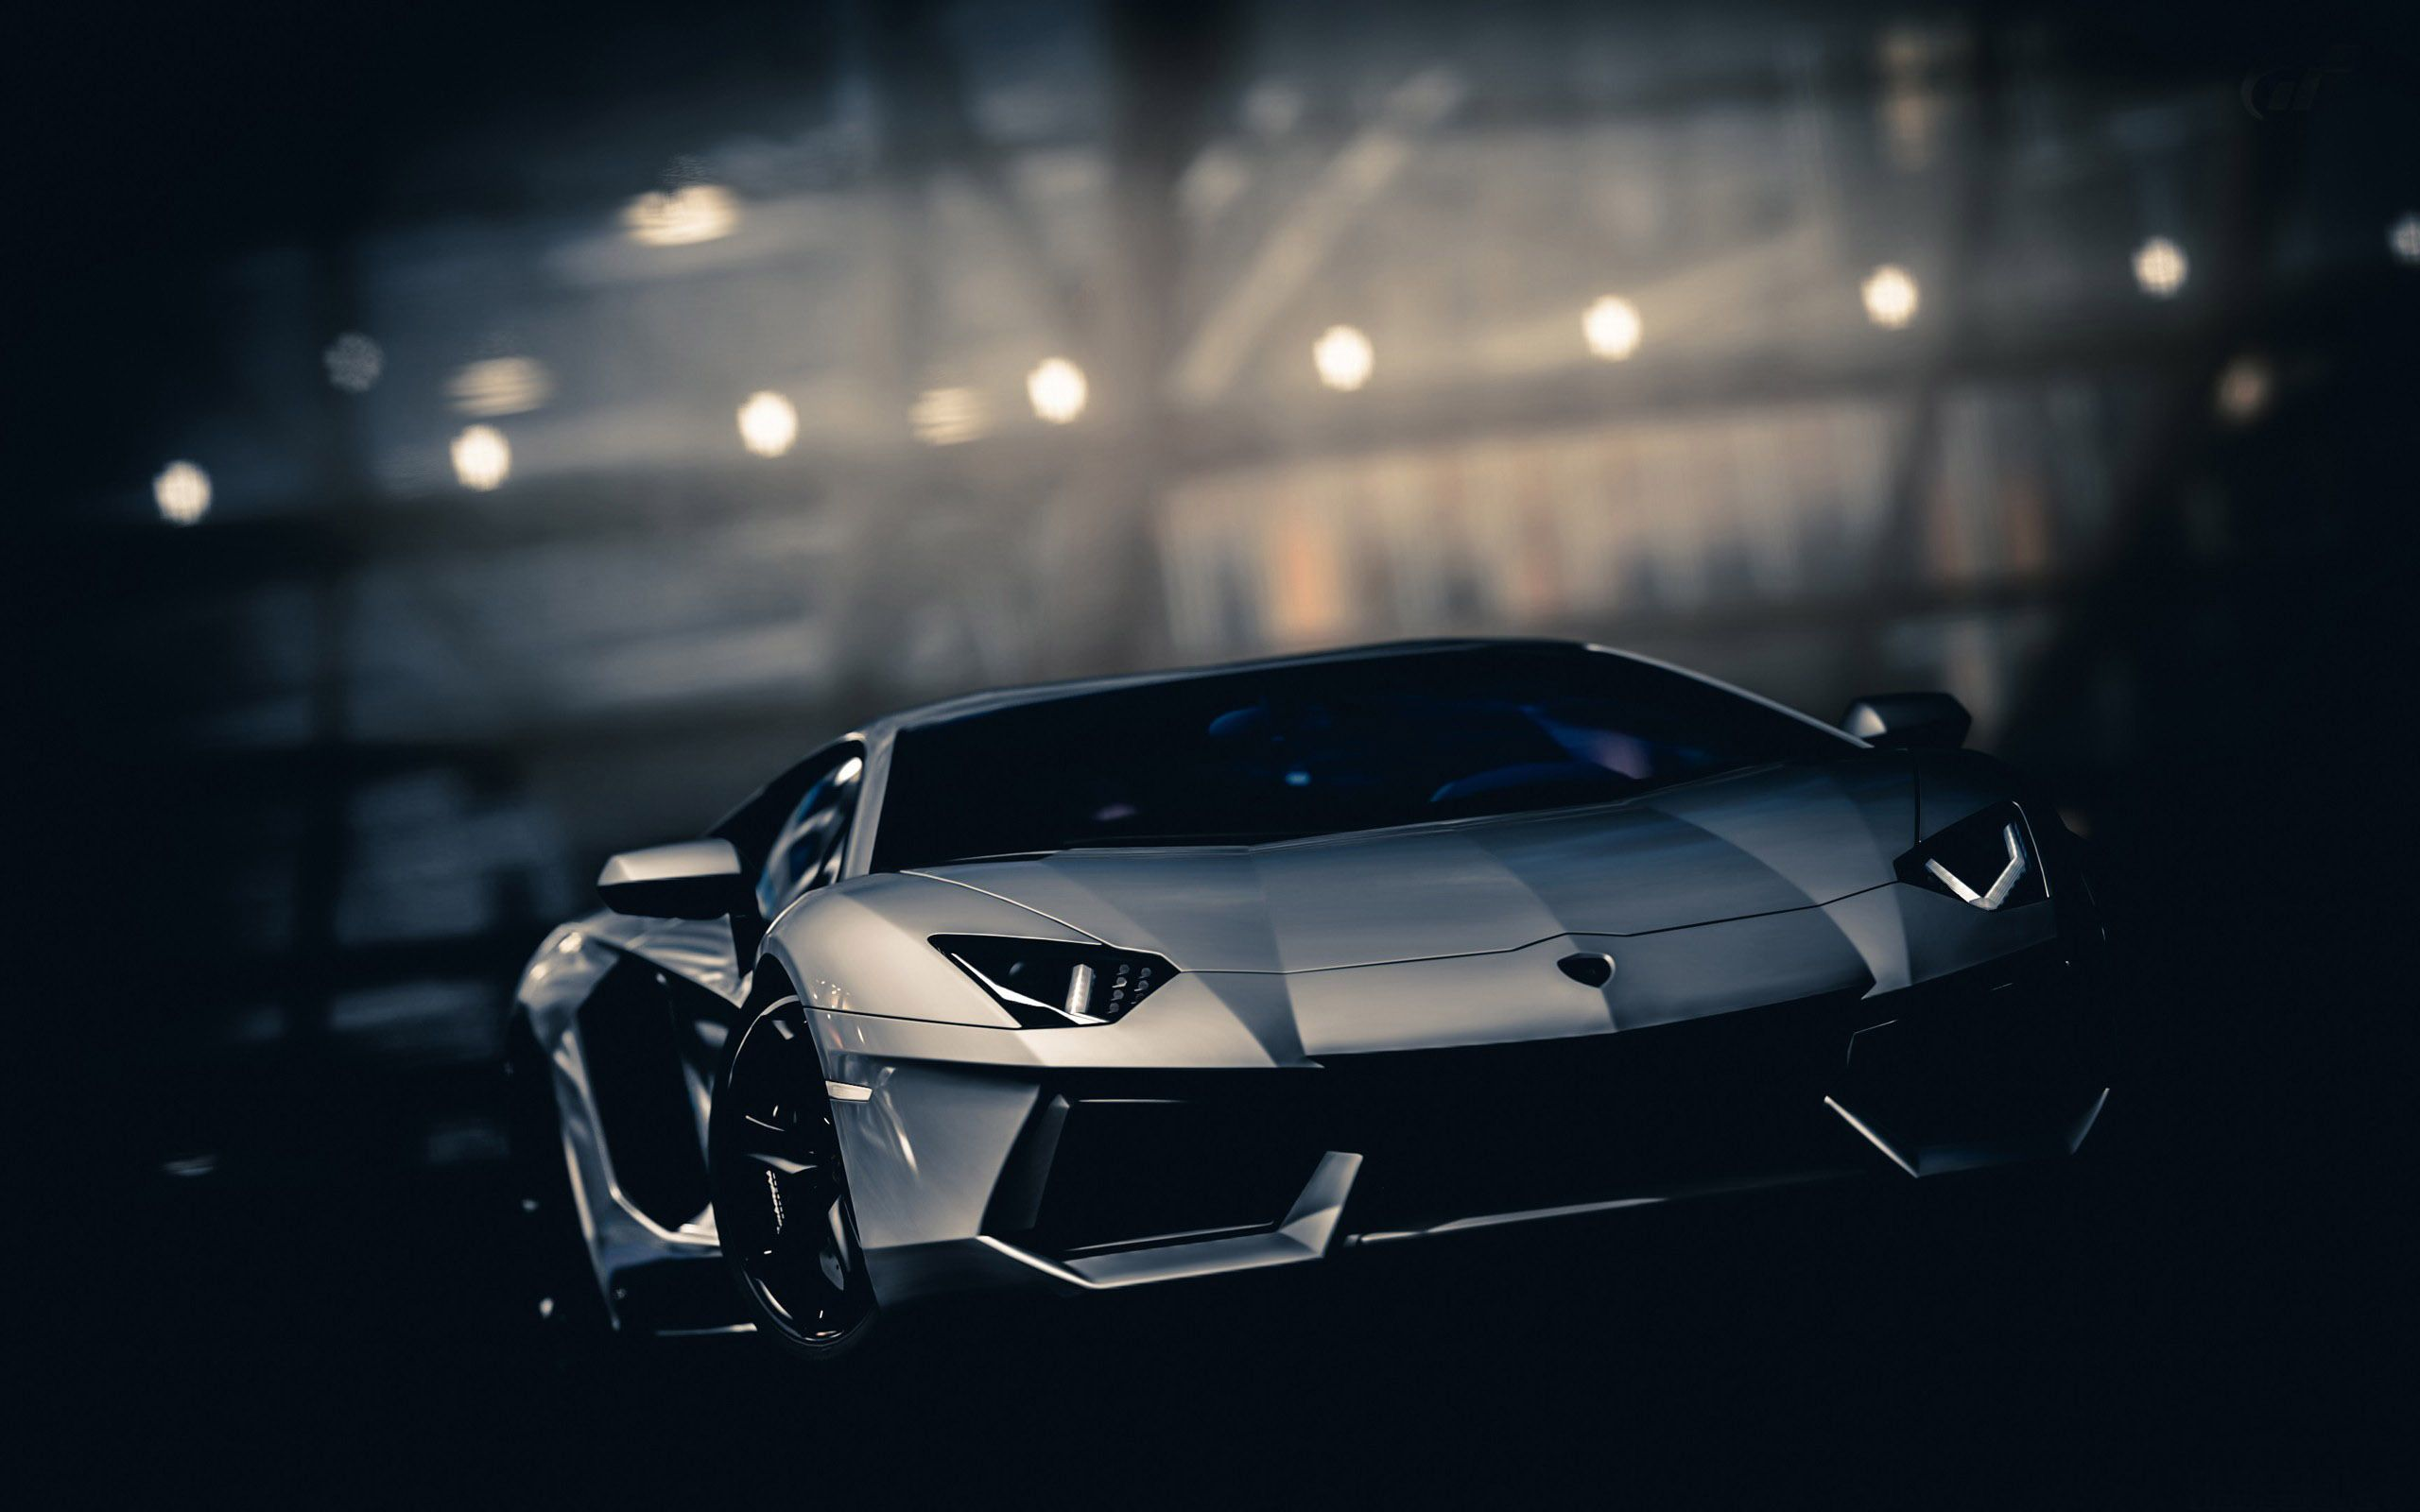 Lamborghini Wallpaper Hd 1080p You Can Get Gorgeous Wallpapers As